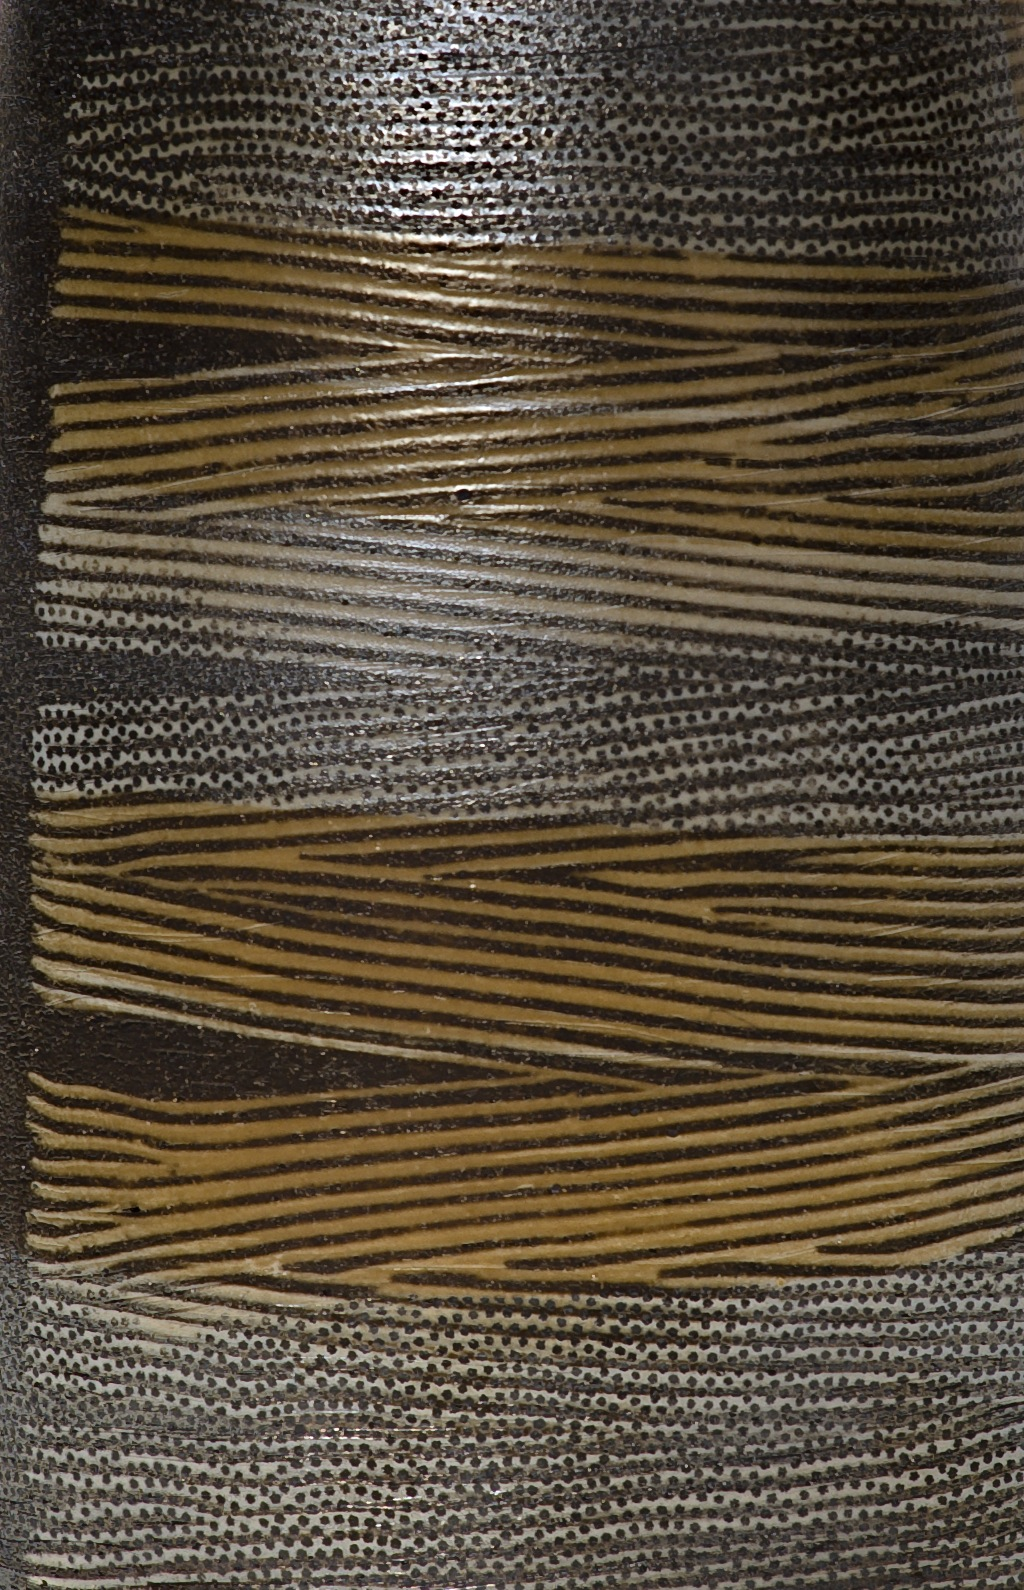 detail of inlaid slip surface with dot overlay